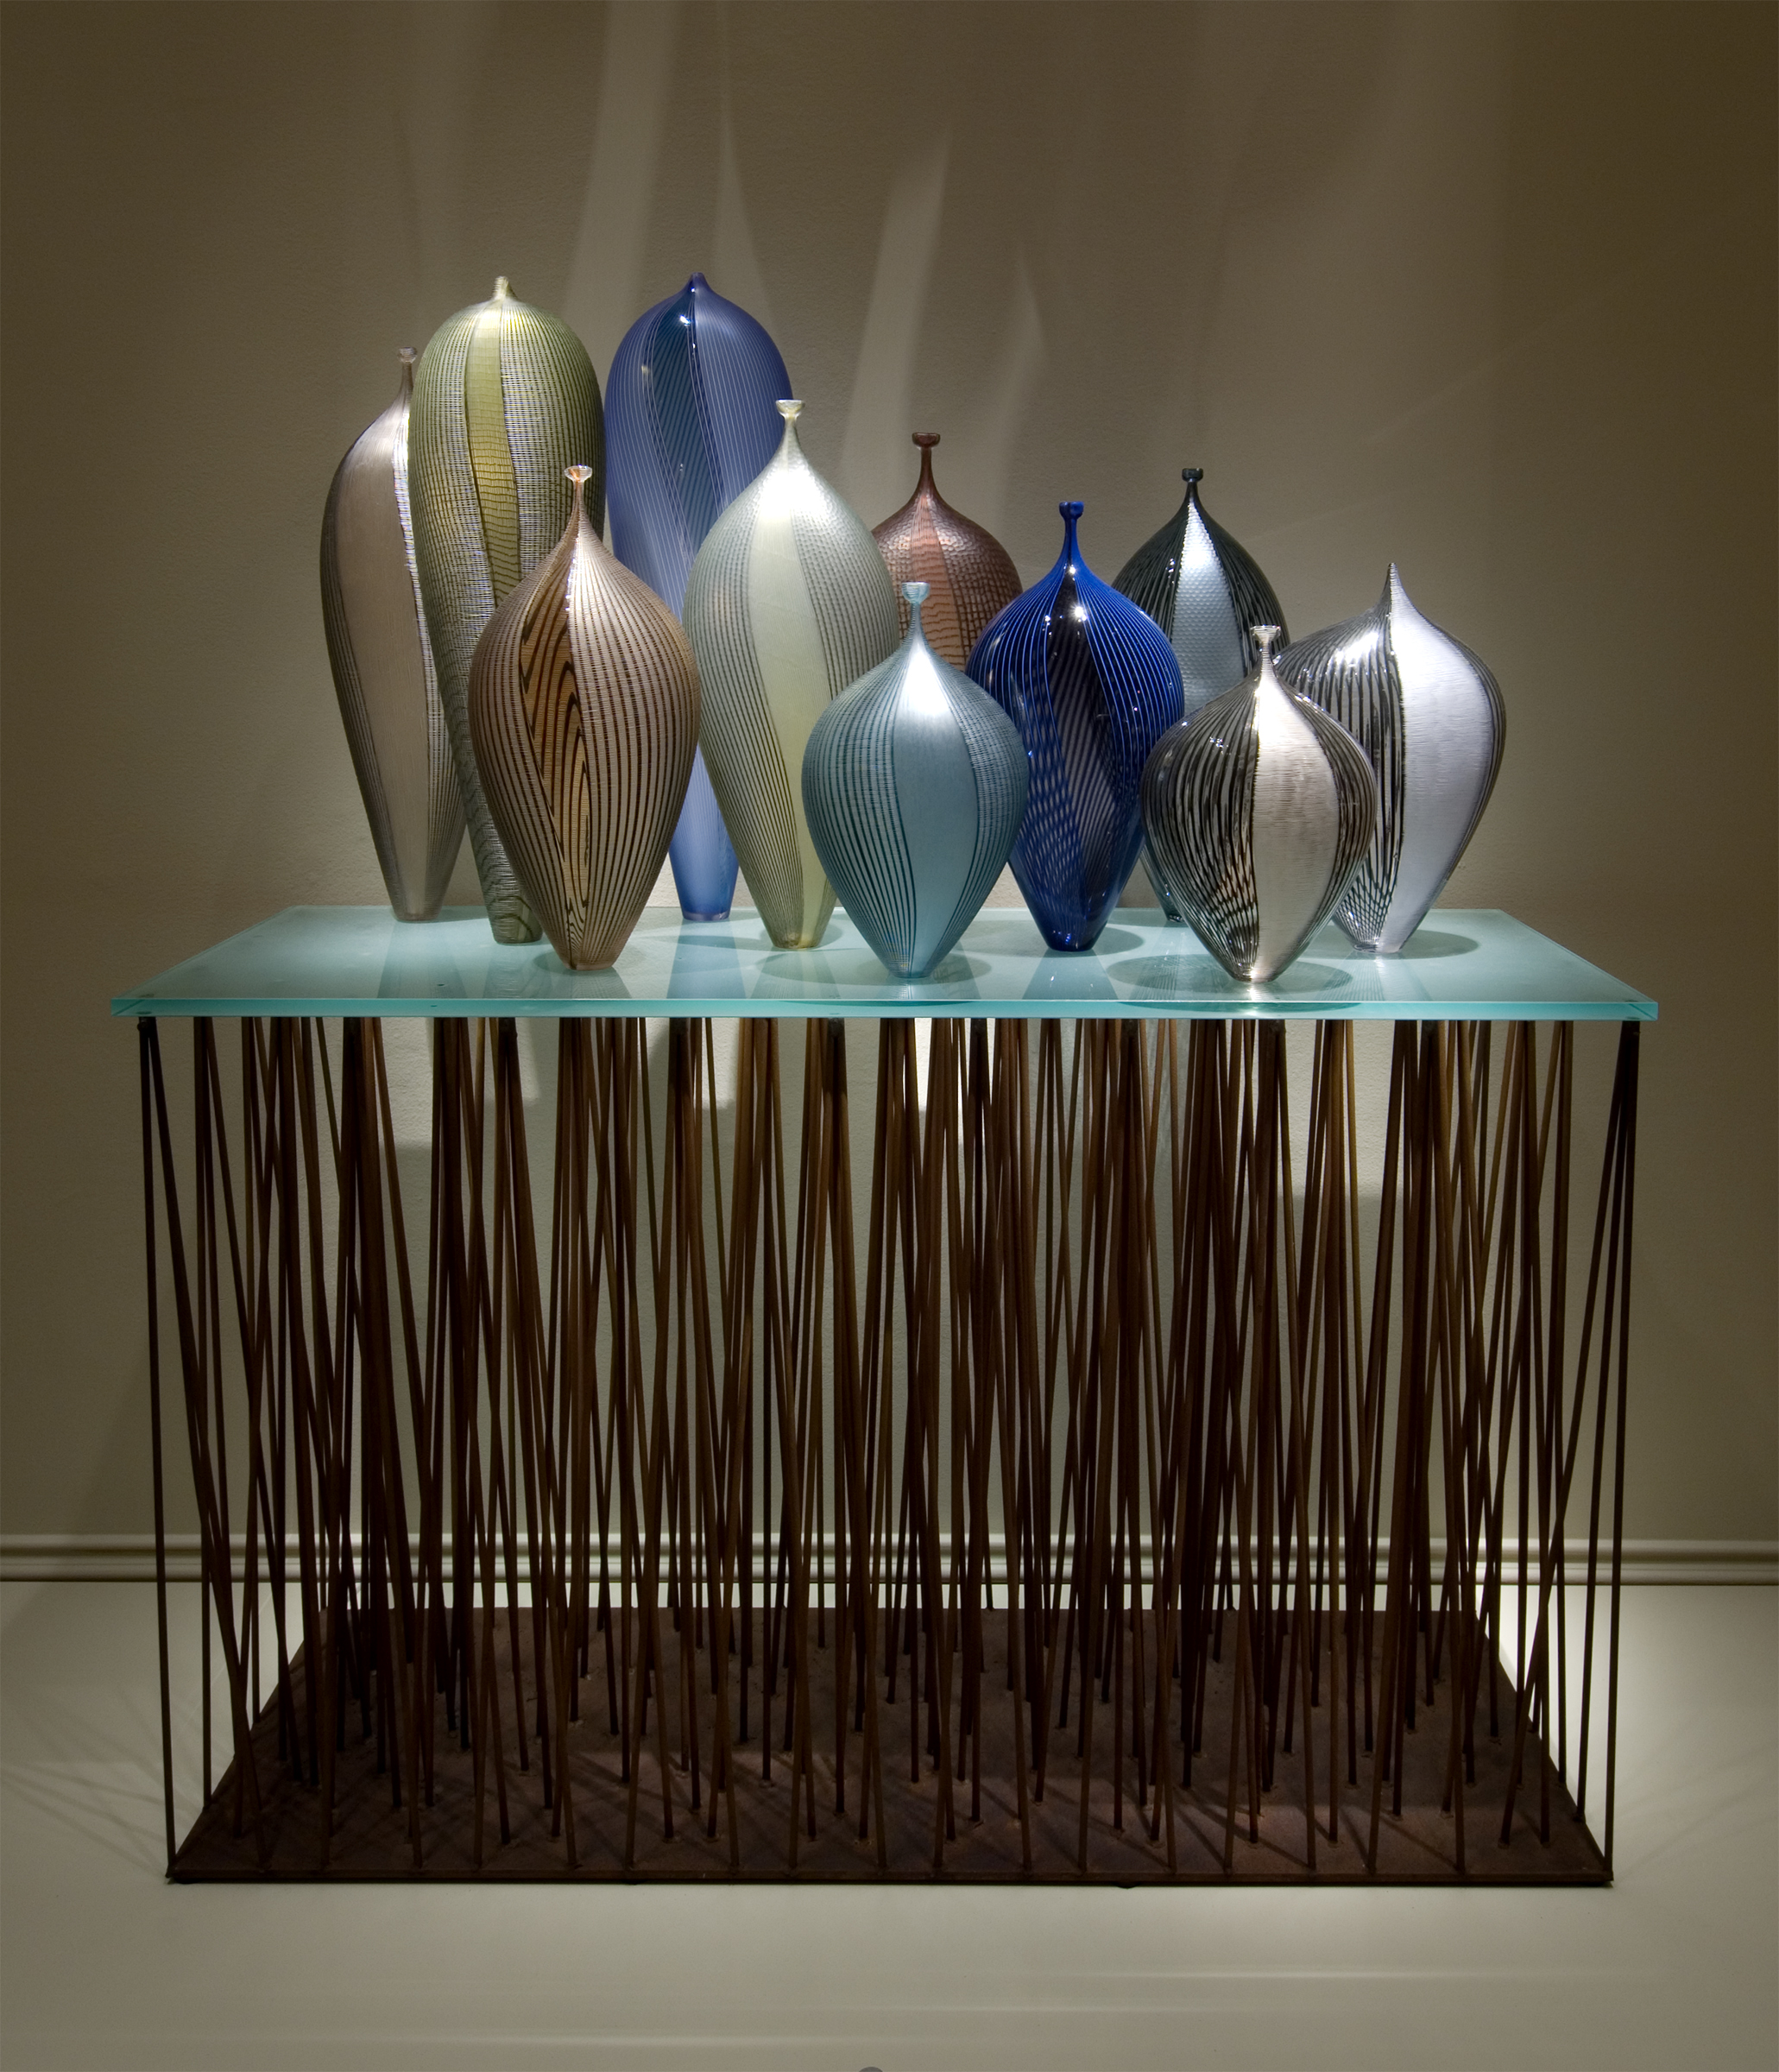 Lino Tagliapietra (Italian, born 1934). Manhattan Sunset,  1997.Blown glass with canepick-ups,  battuto  and  inciso  cut; steel and glass base;67 x 60 x 20 in.Collection of Museum of Glass, Tacoma, Washington.Photo courtesy of the Smithsonian American Art Museum.